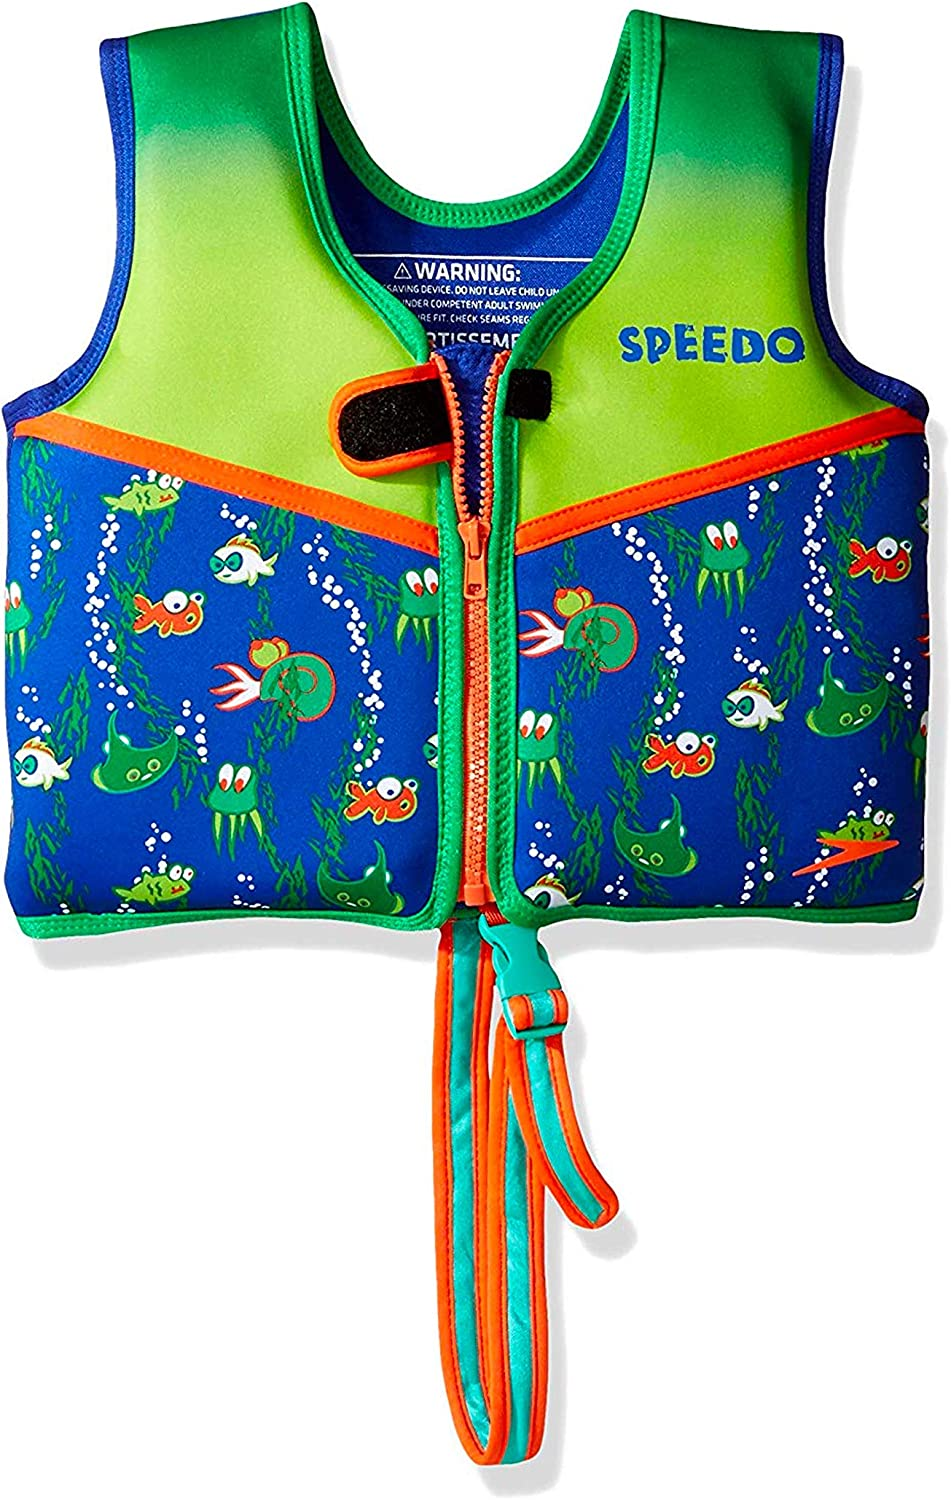 Speedo Swim Flotation Classic Life Vest Begin to Swim UPF 50 Vest